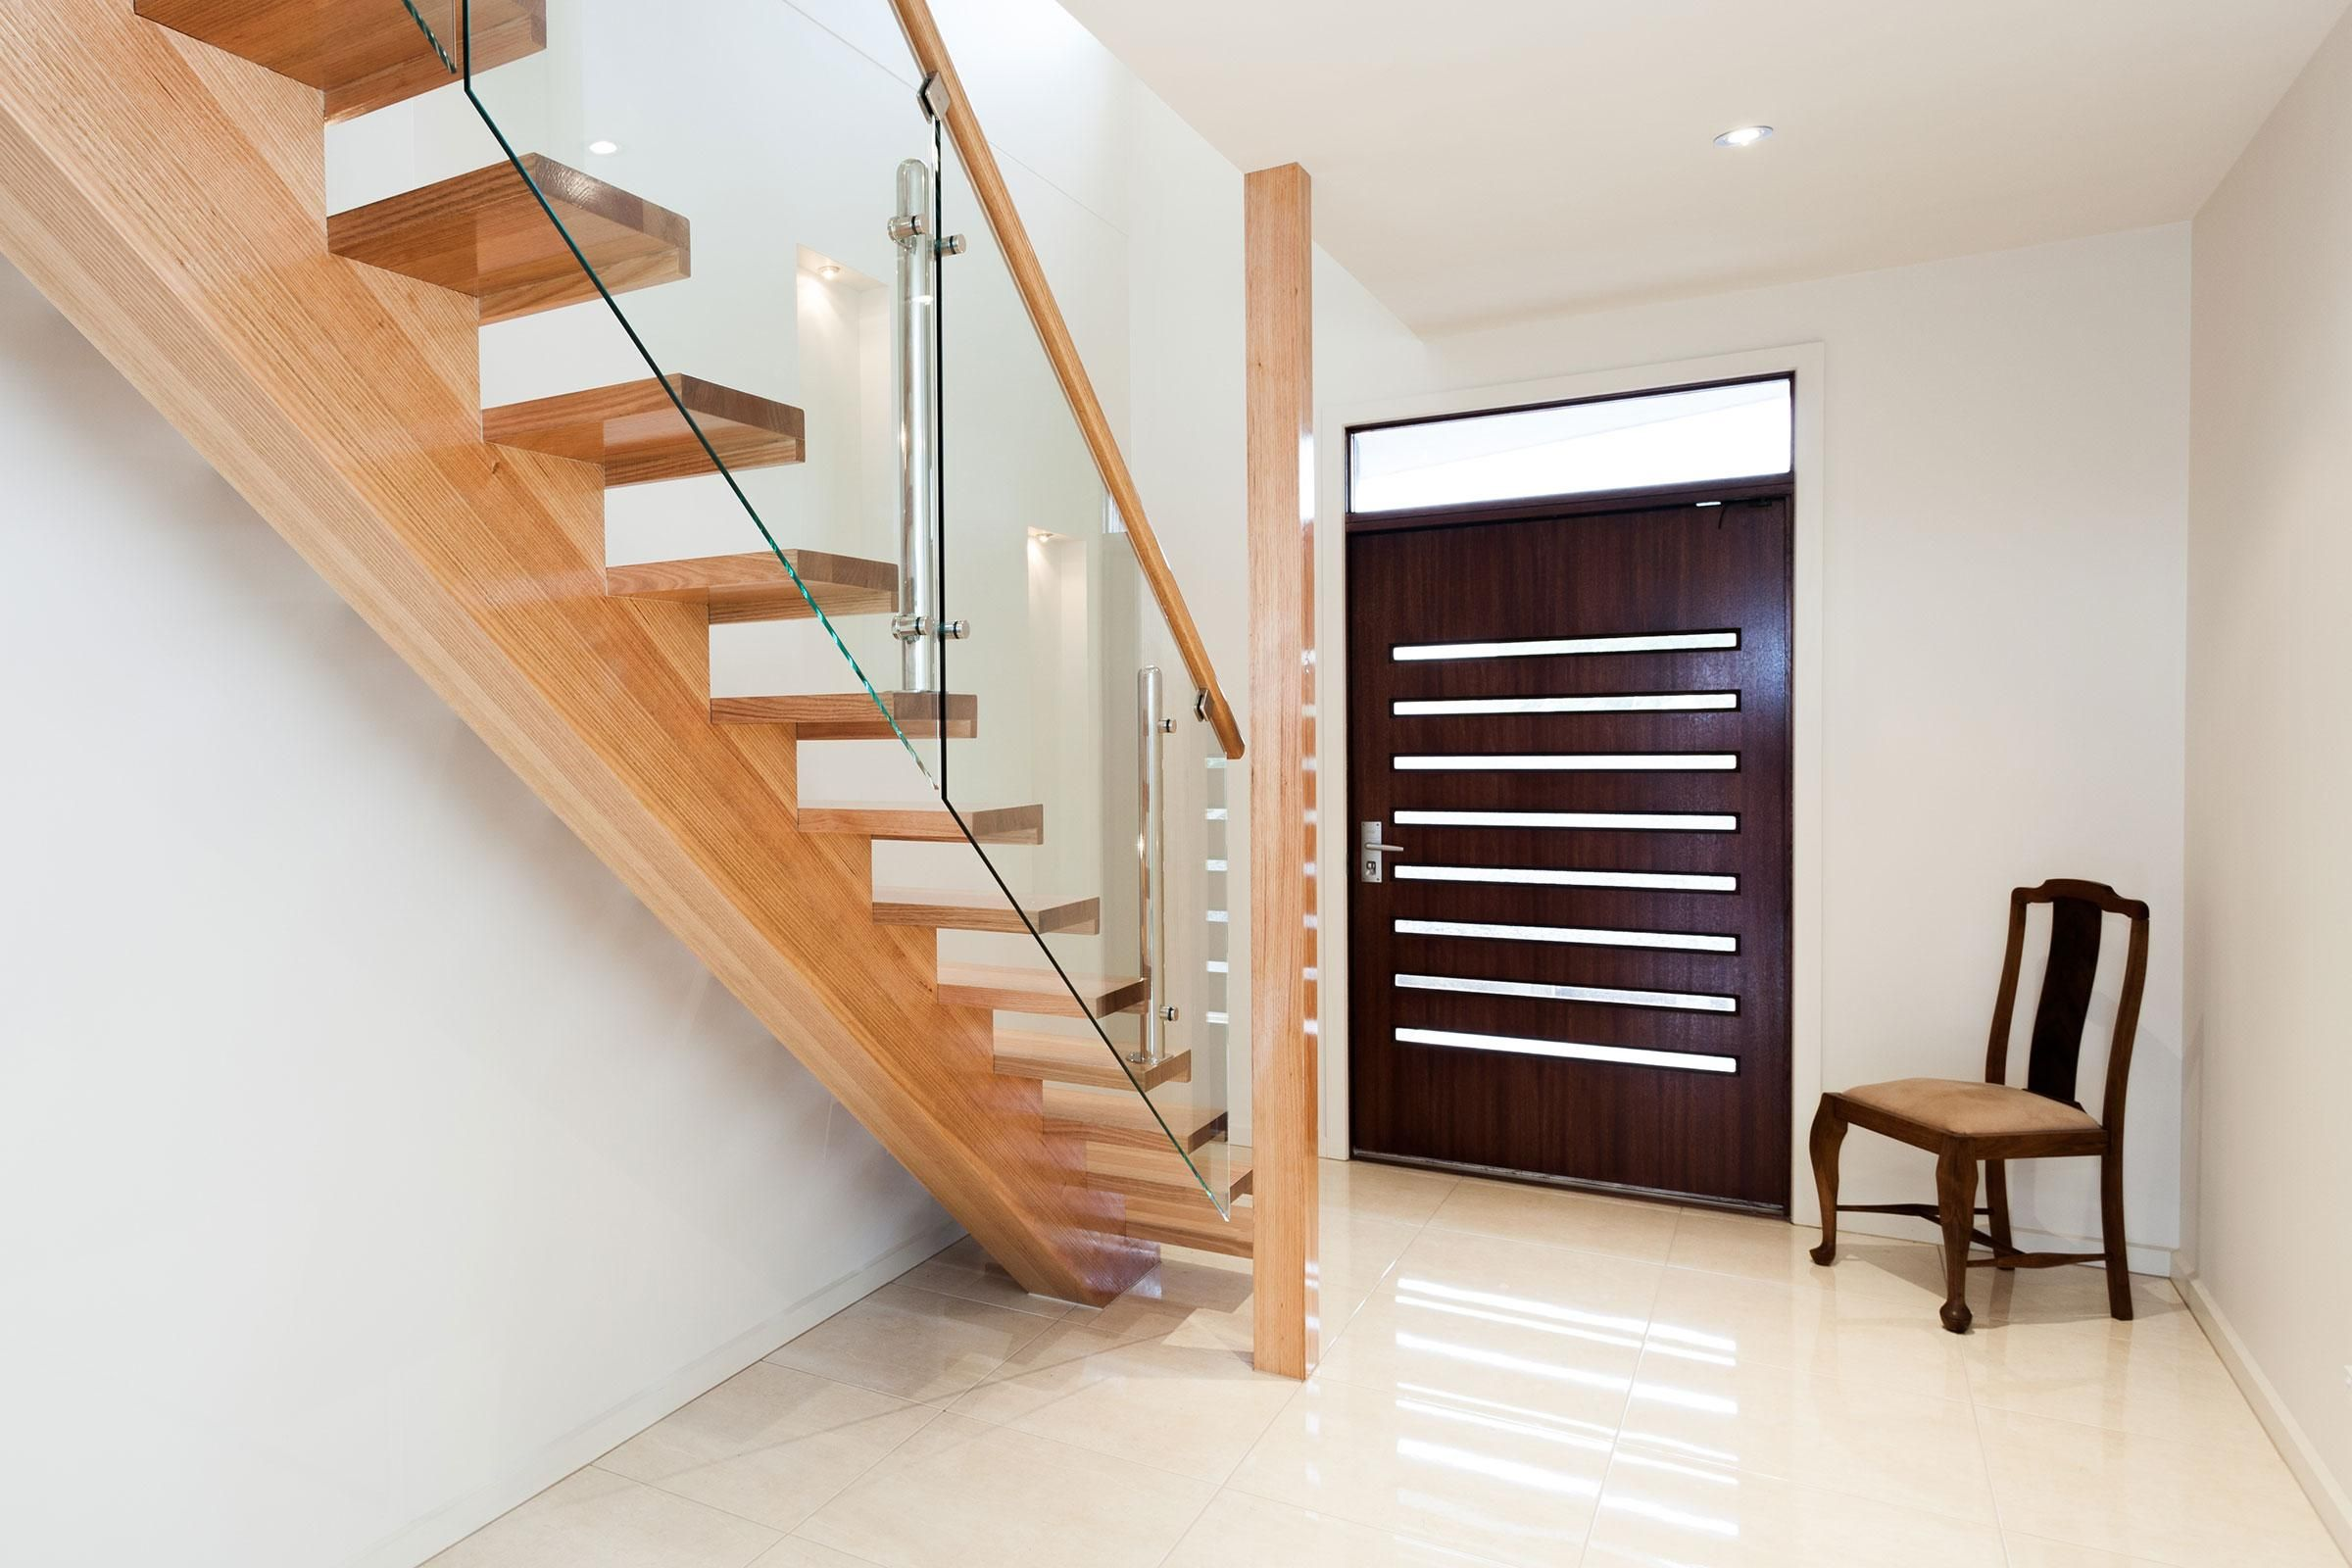 Just Stairs Timber Stair Timber Staircase House Staircase | Wood Mono Stringer Stairs | Central | Arch | Hardwood | Glass | Timber